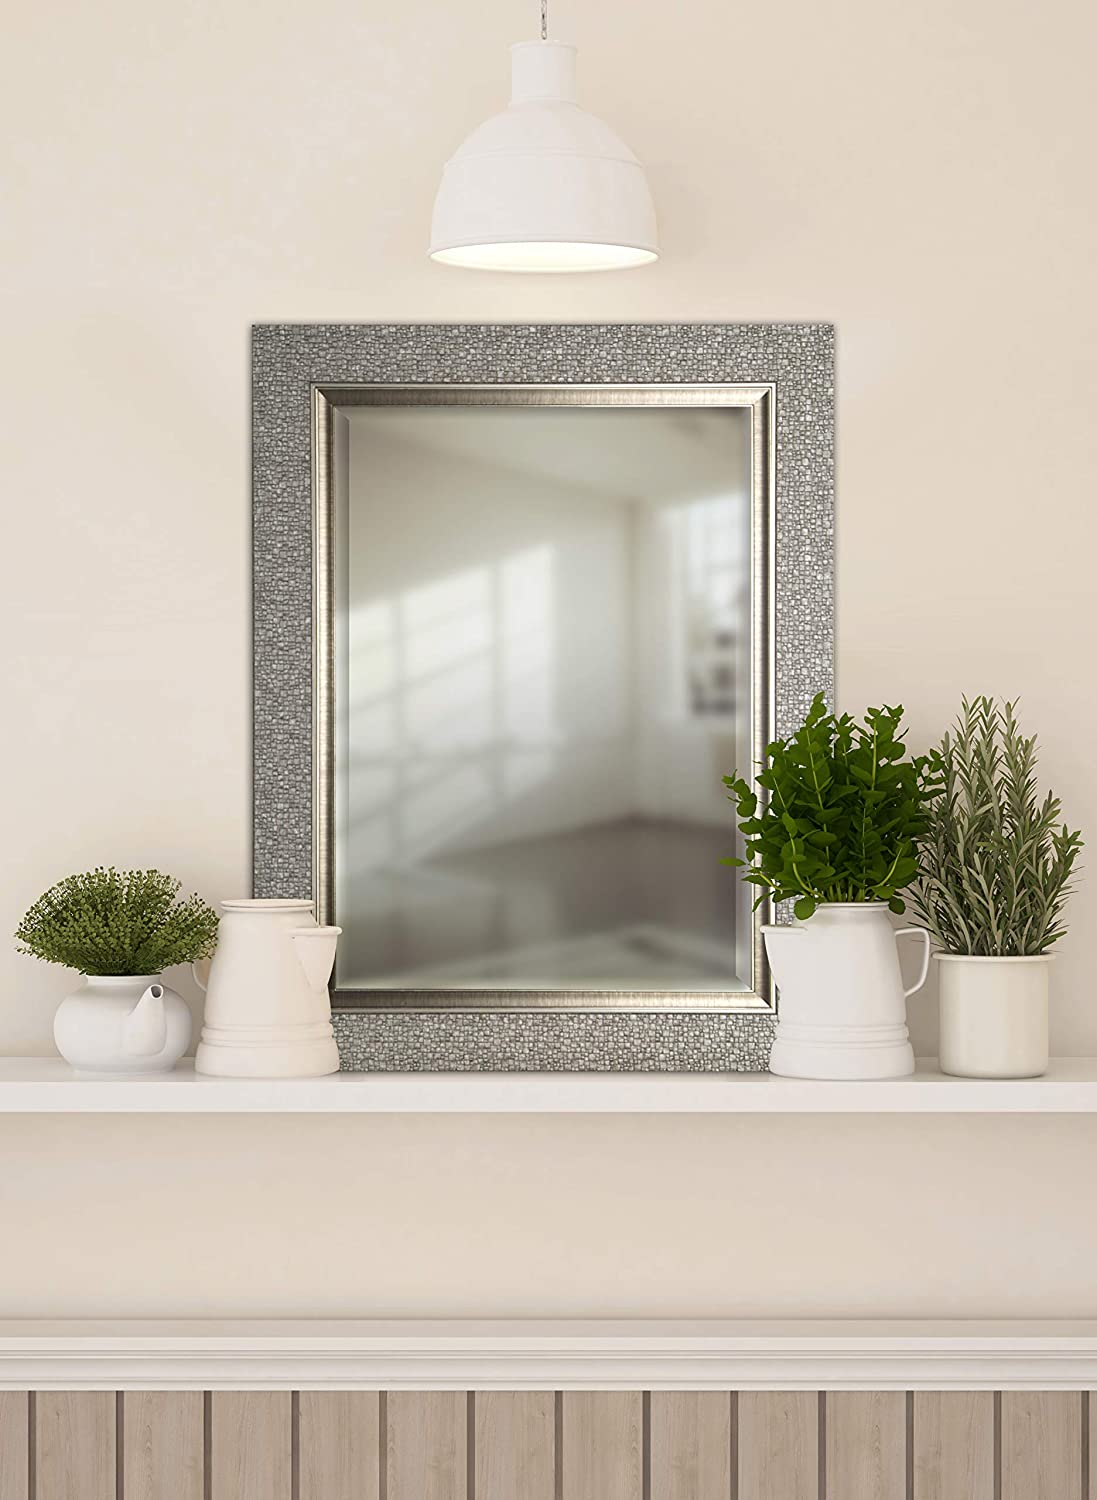 Bedroom 25.25X41.25X1.25 Silver Rectangle Mirrorize Canada Hexagon Pattern With Silver Gloss Finish Beveled Wall Mirror Large Bevelled Mirror Vanity,Hallway,Bathroom